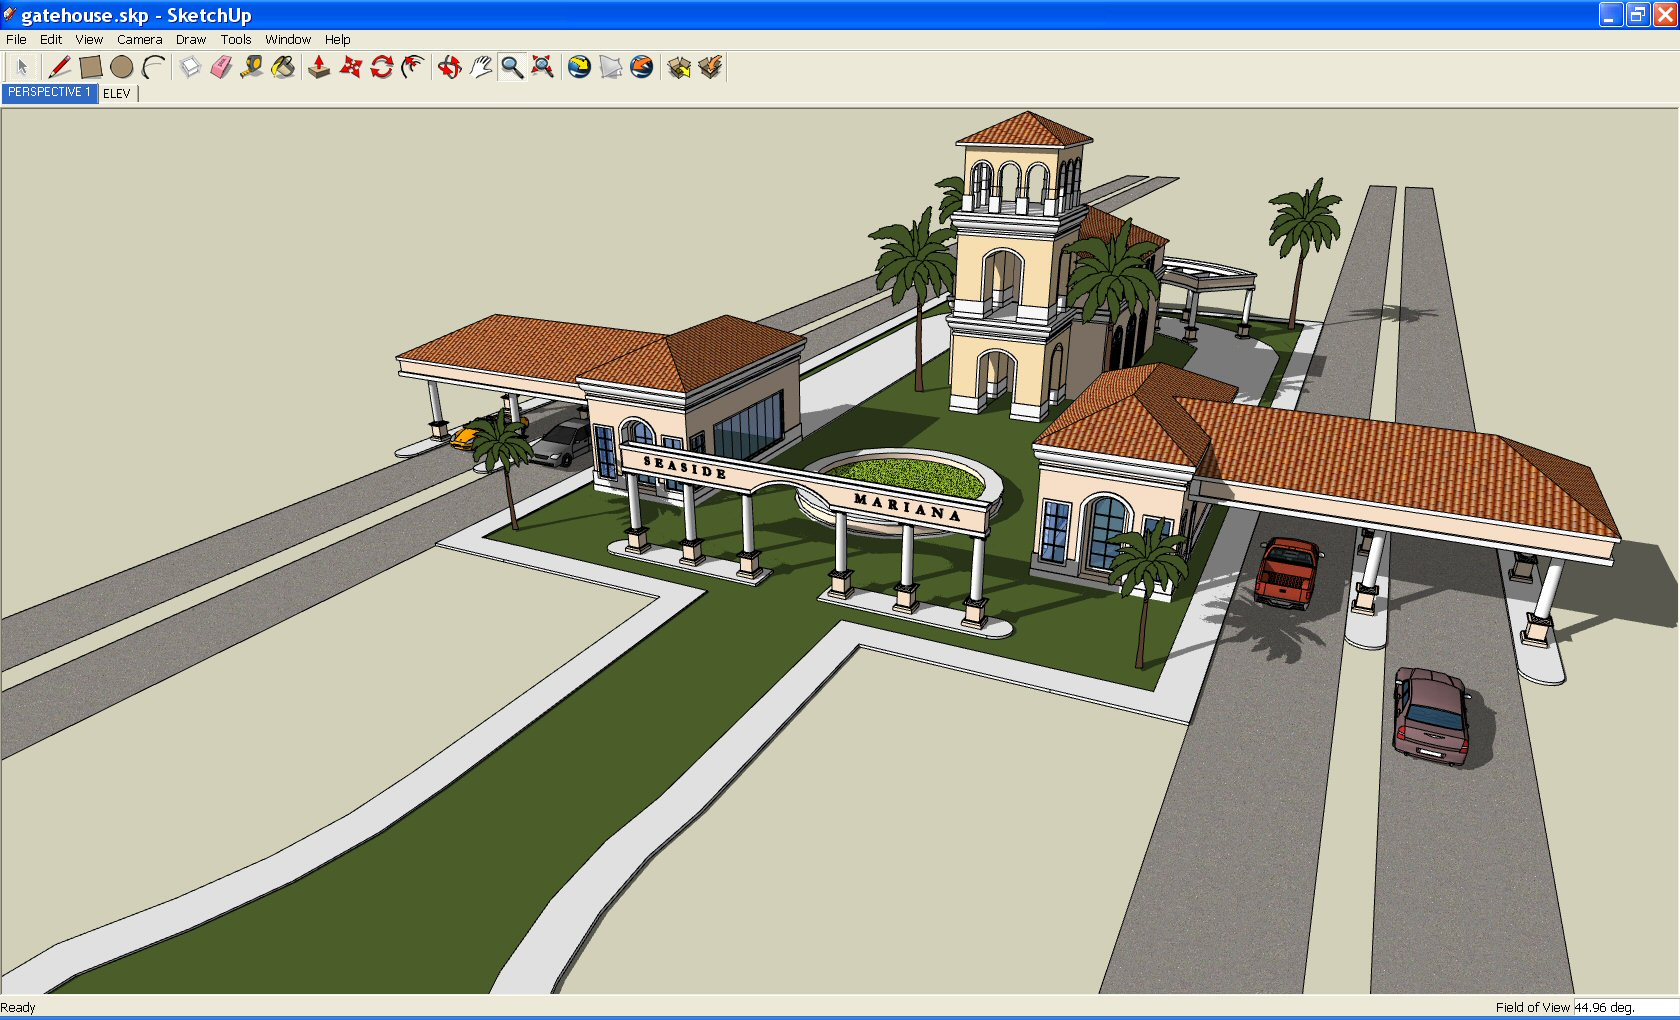 Sketchup for Disegno 3d free